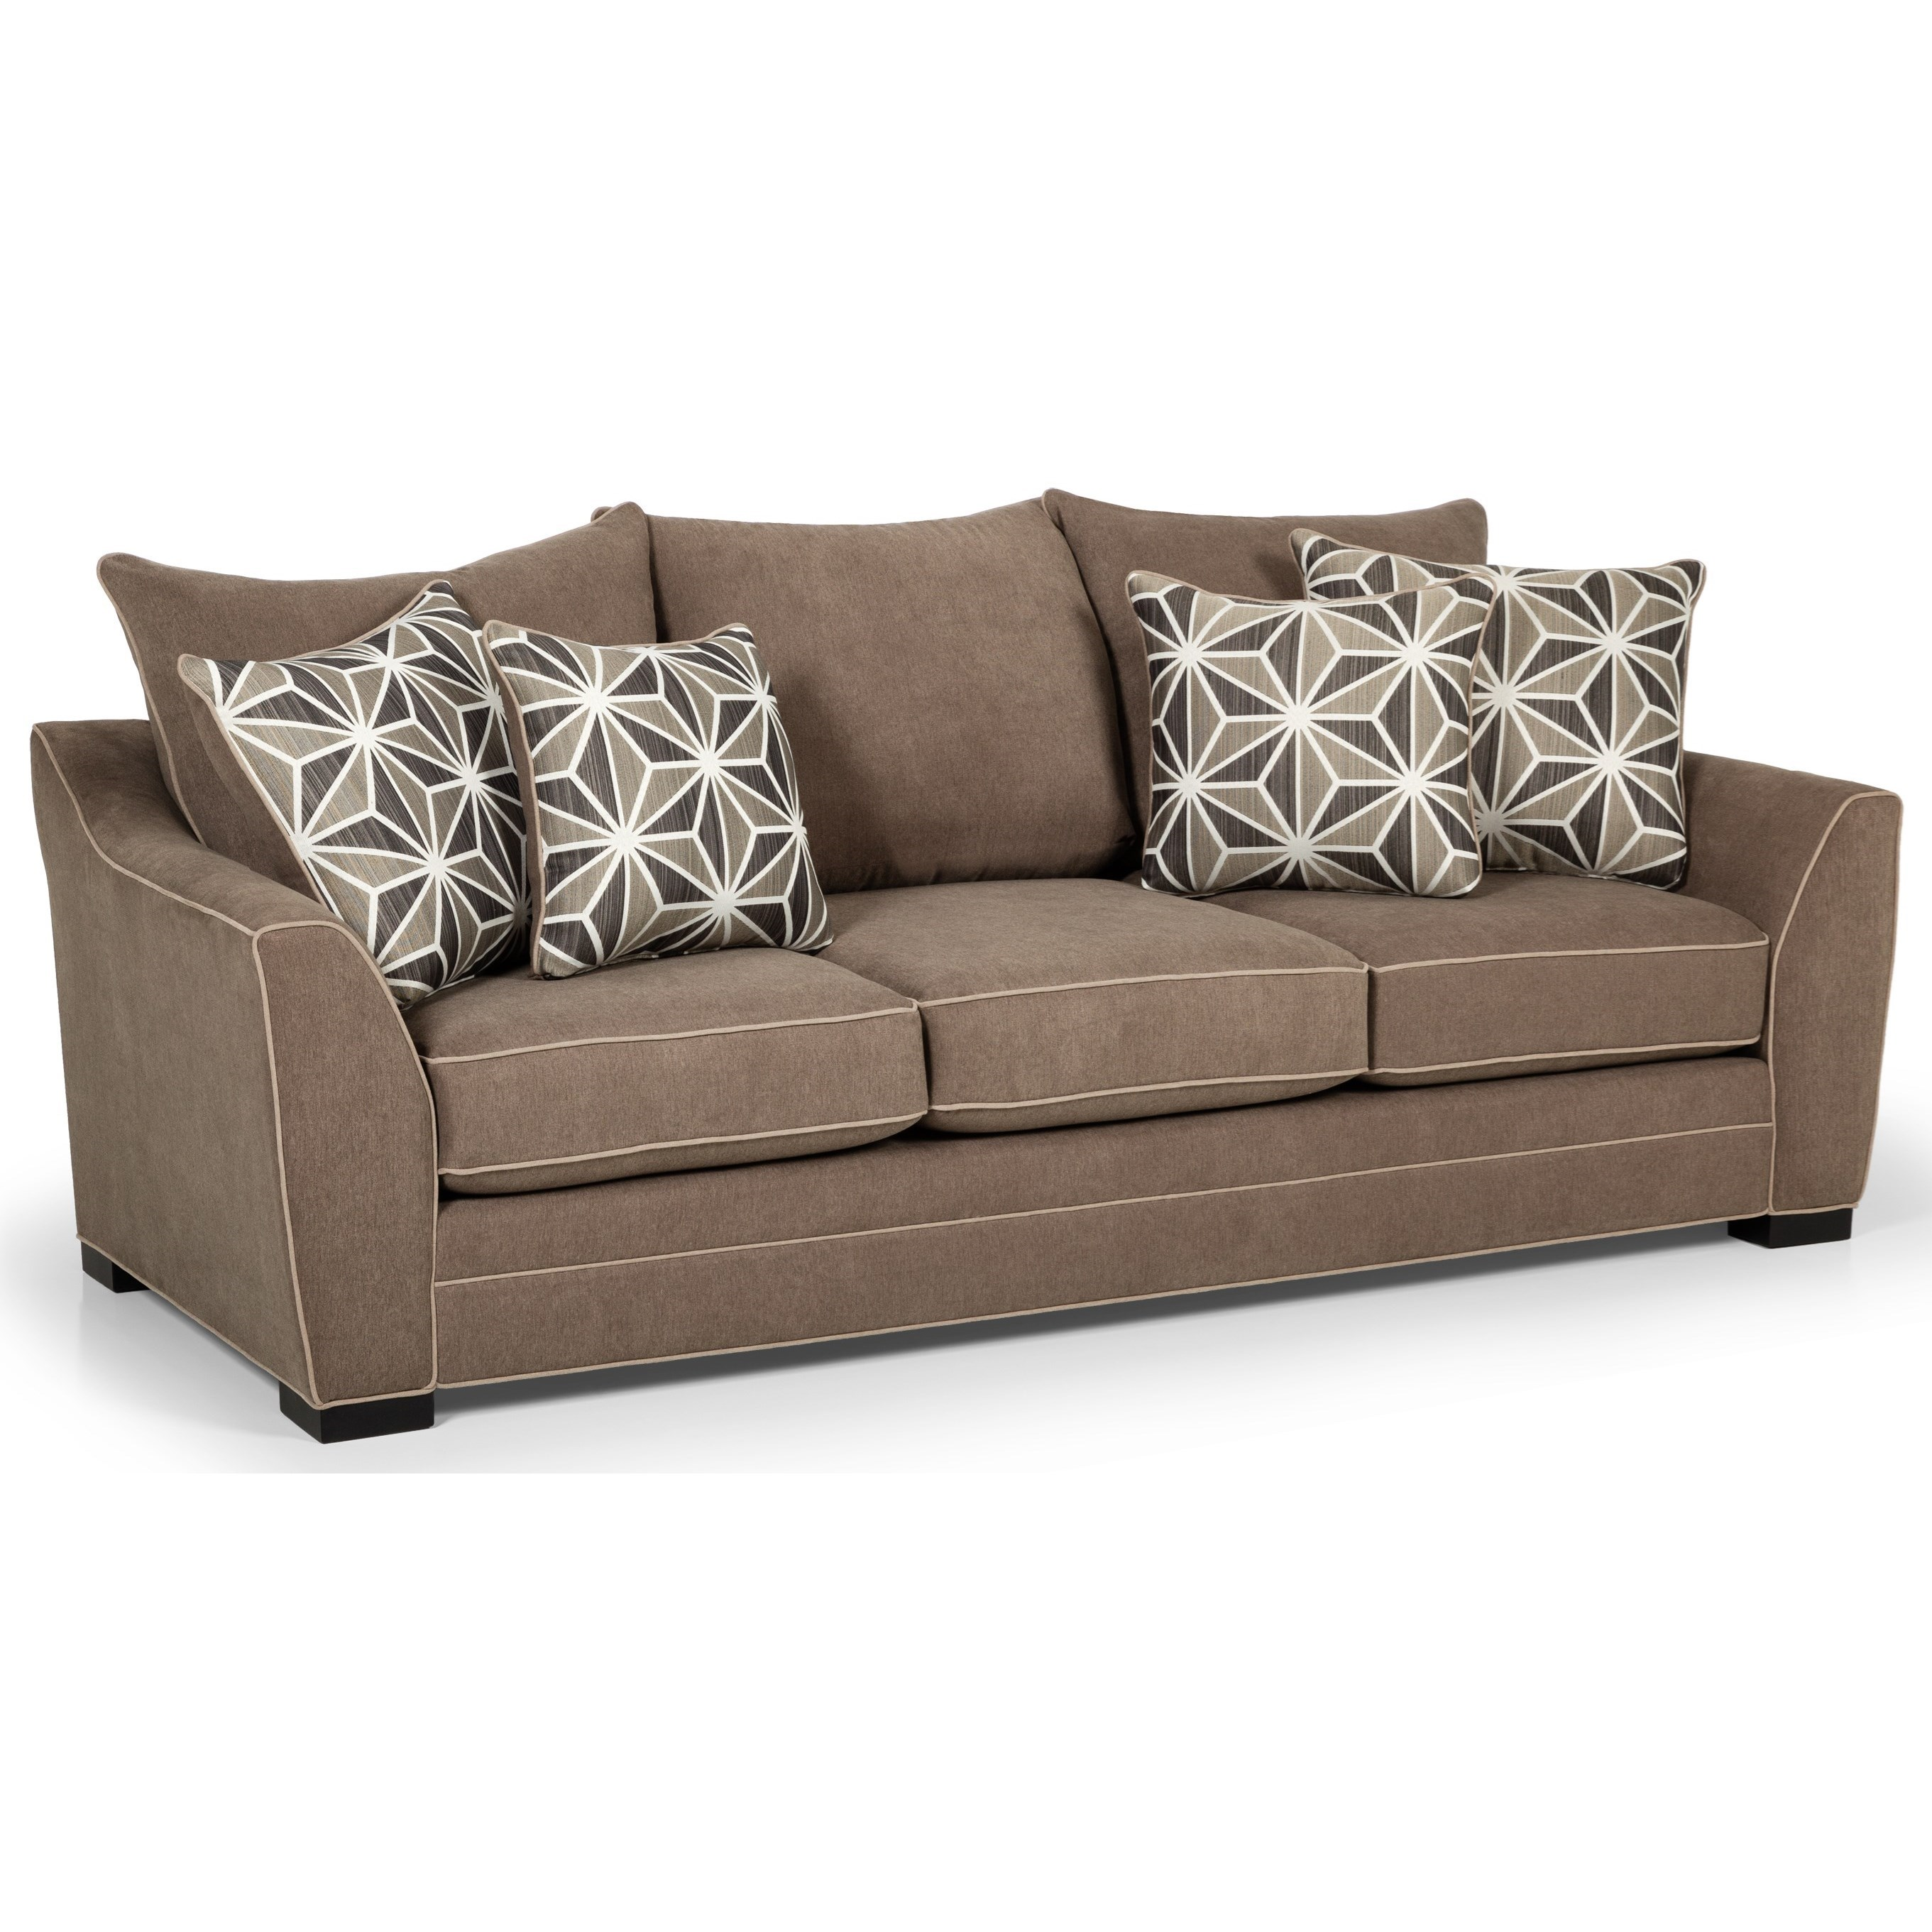 Stanton 378 Casual Sofa With Welt Cord Trim Wilson S